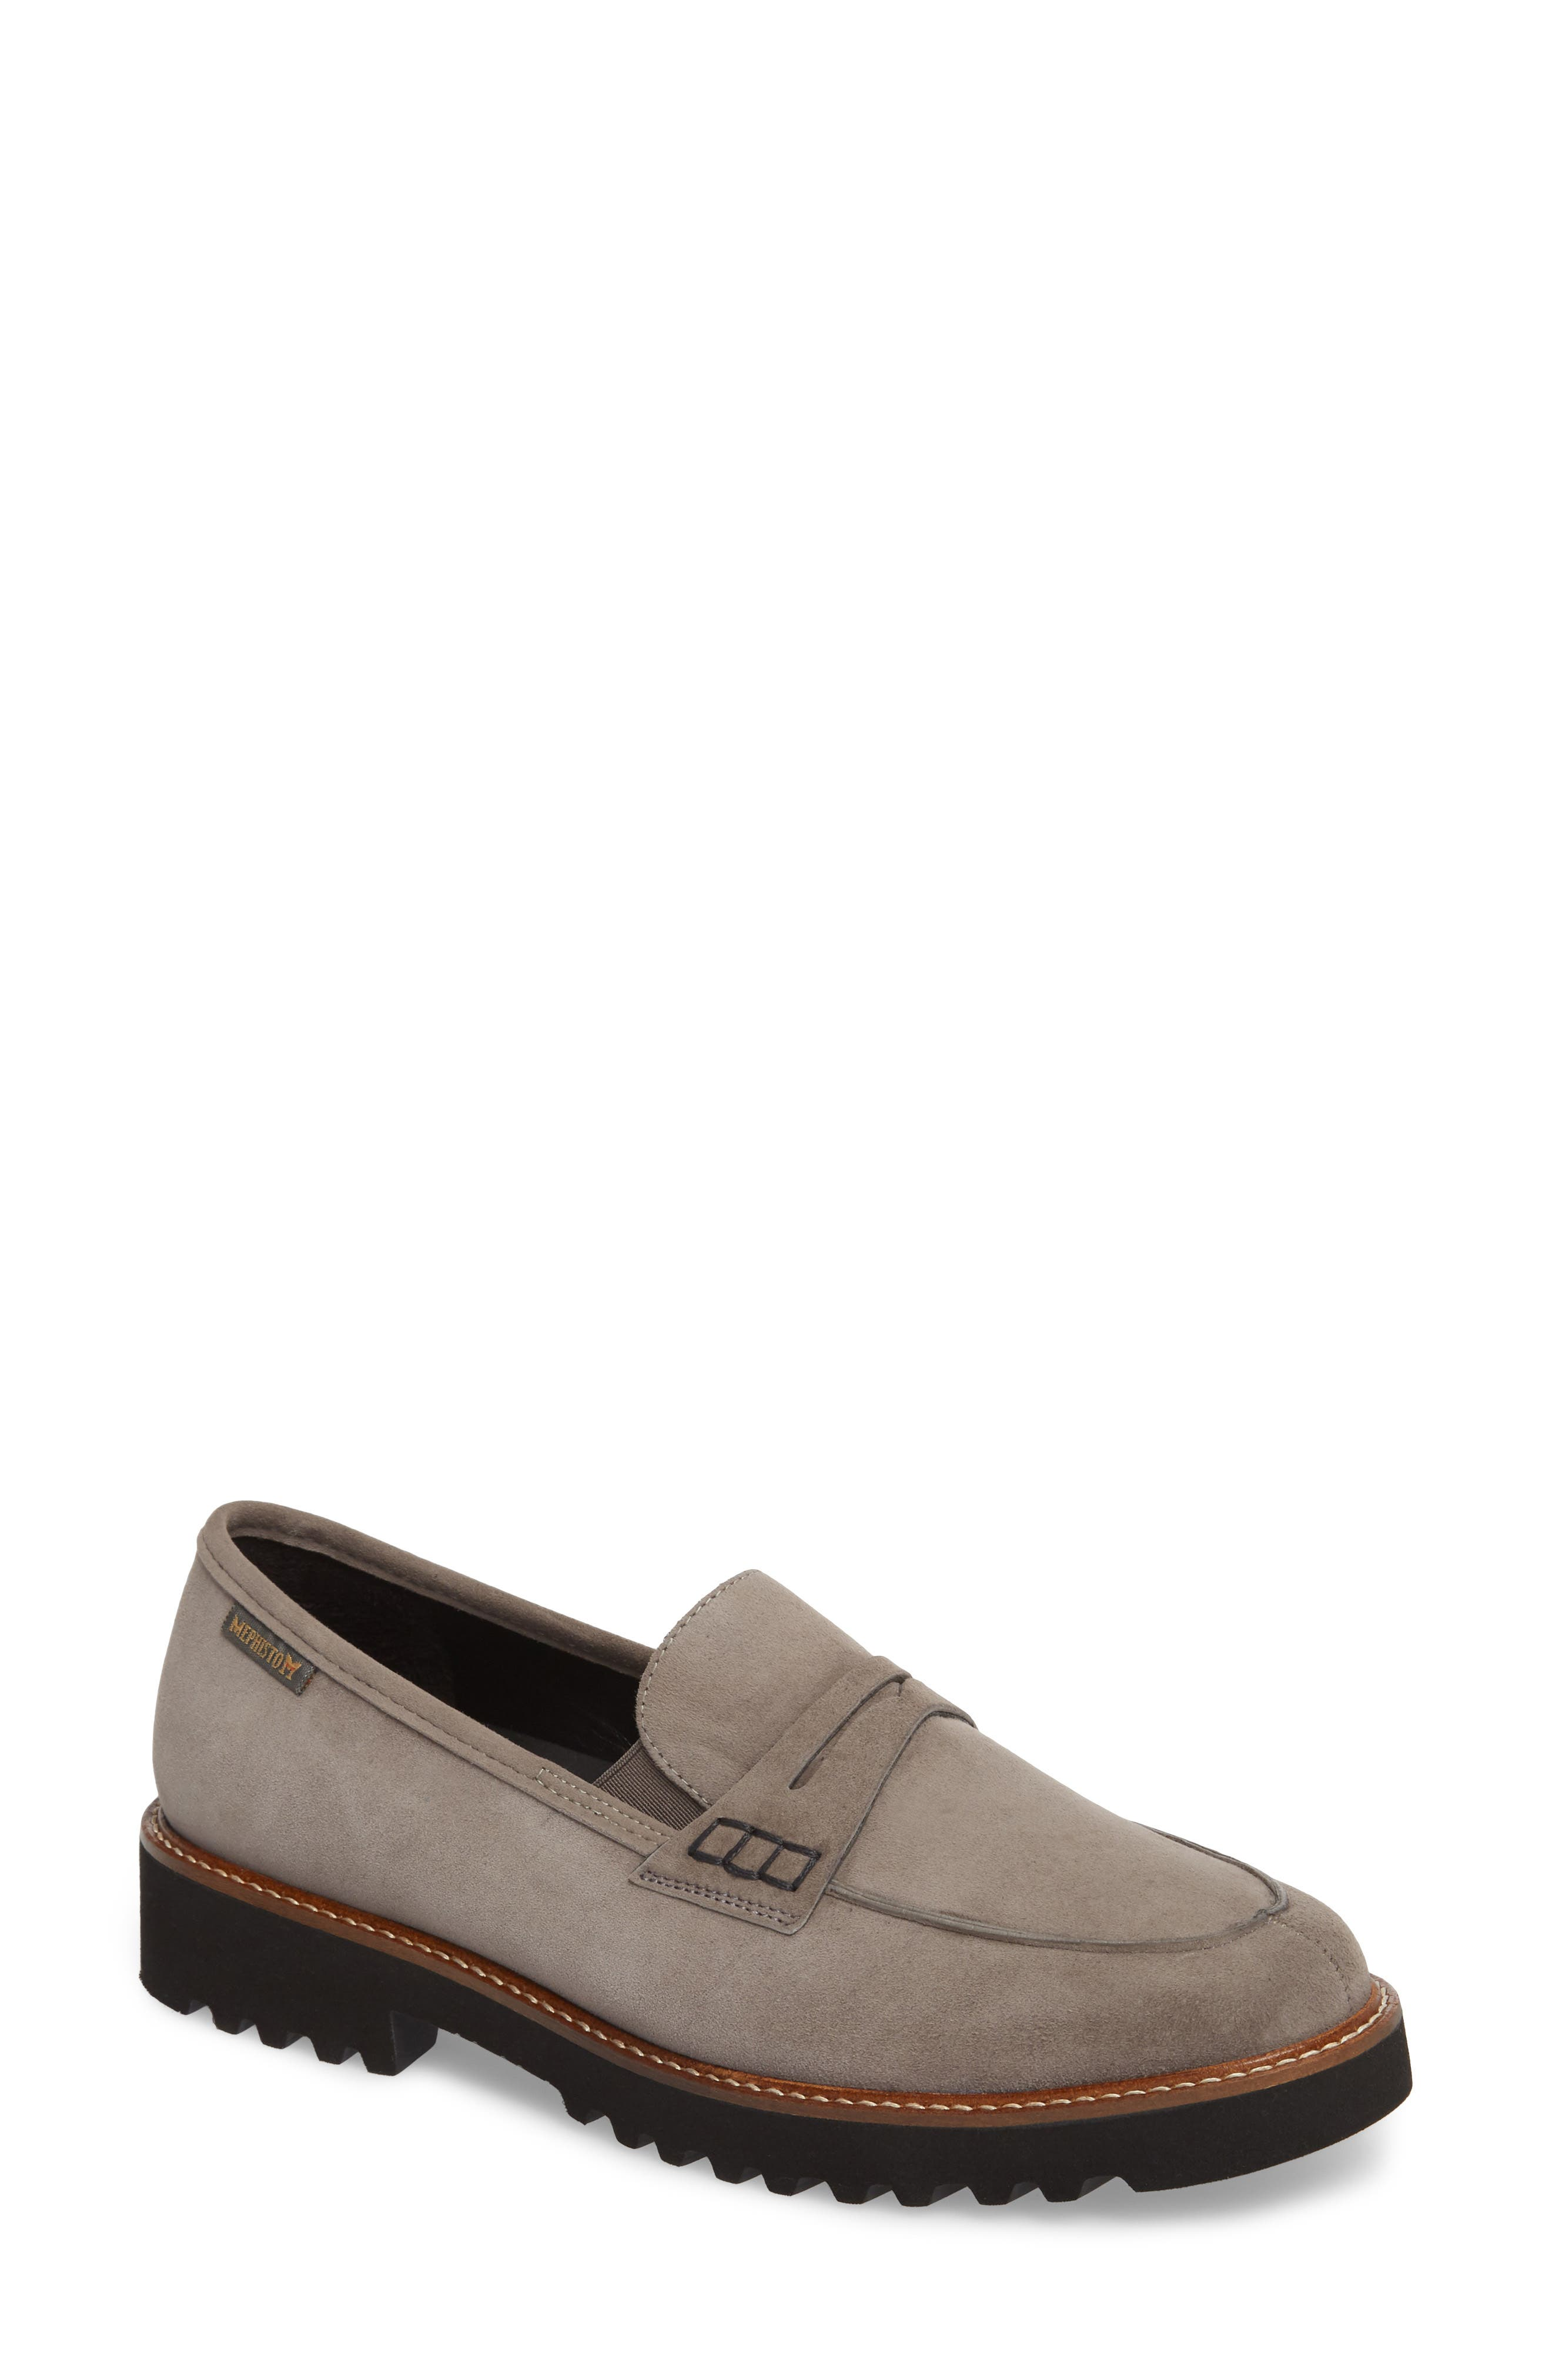 Sidney Penny Loafer,                             Main thumbnail 1, color,                             GREY SUEDE